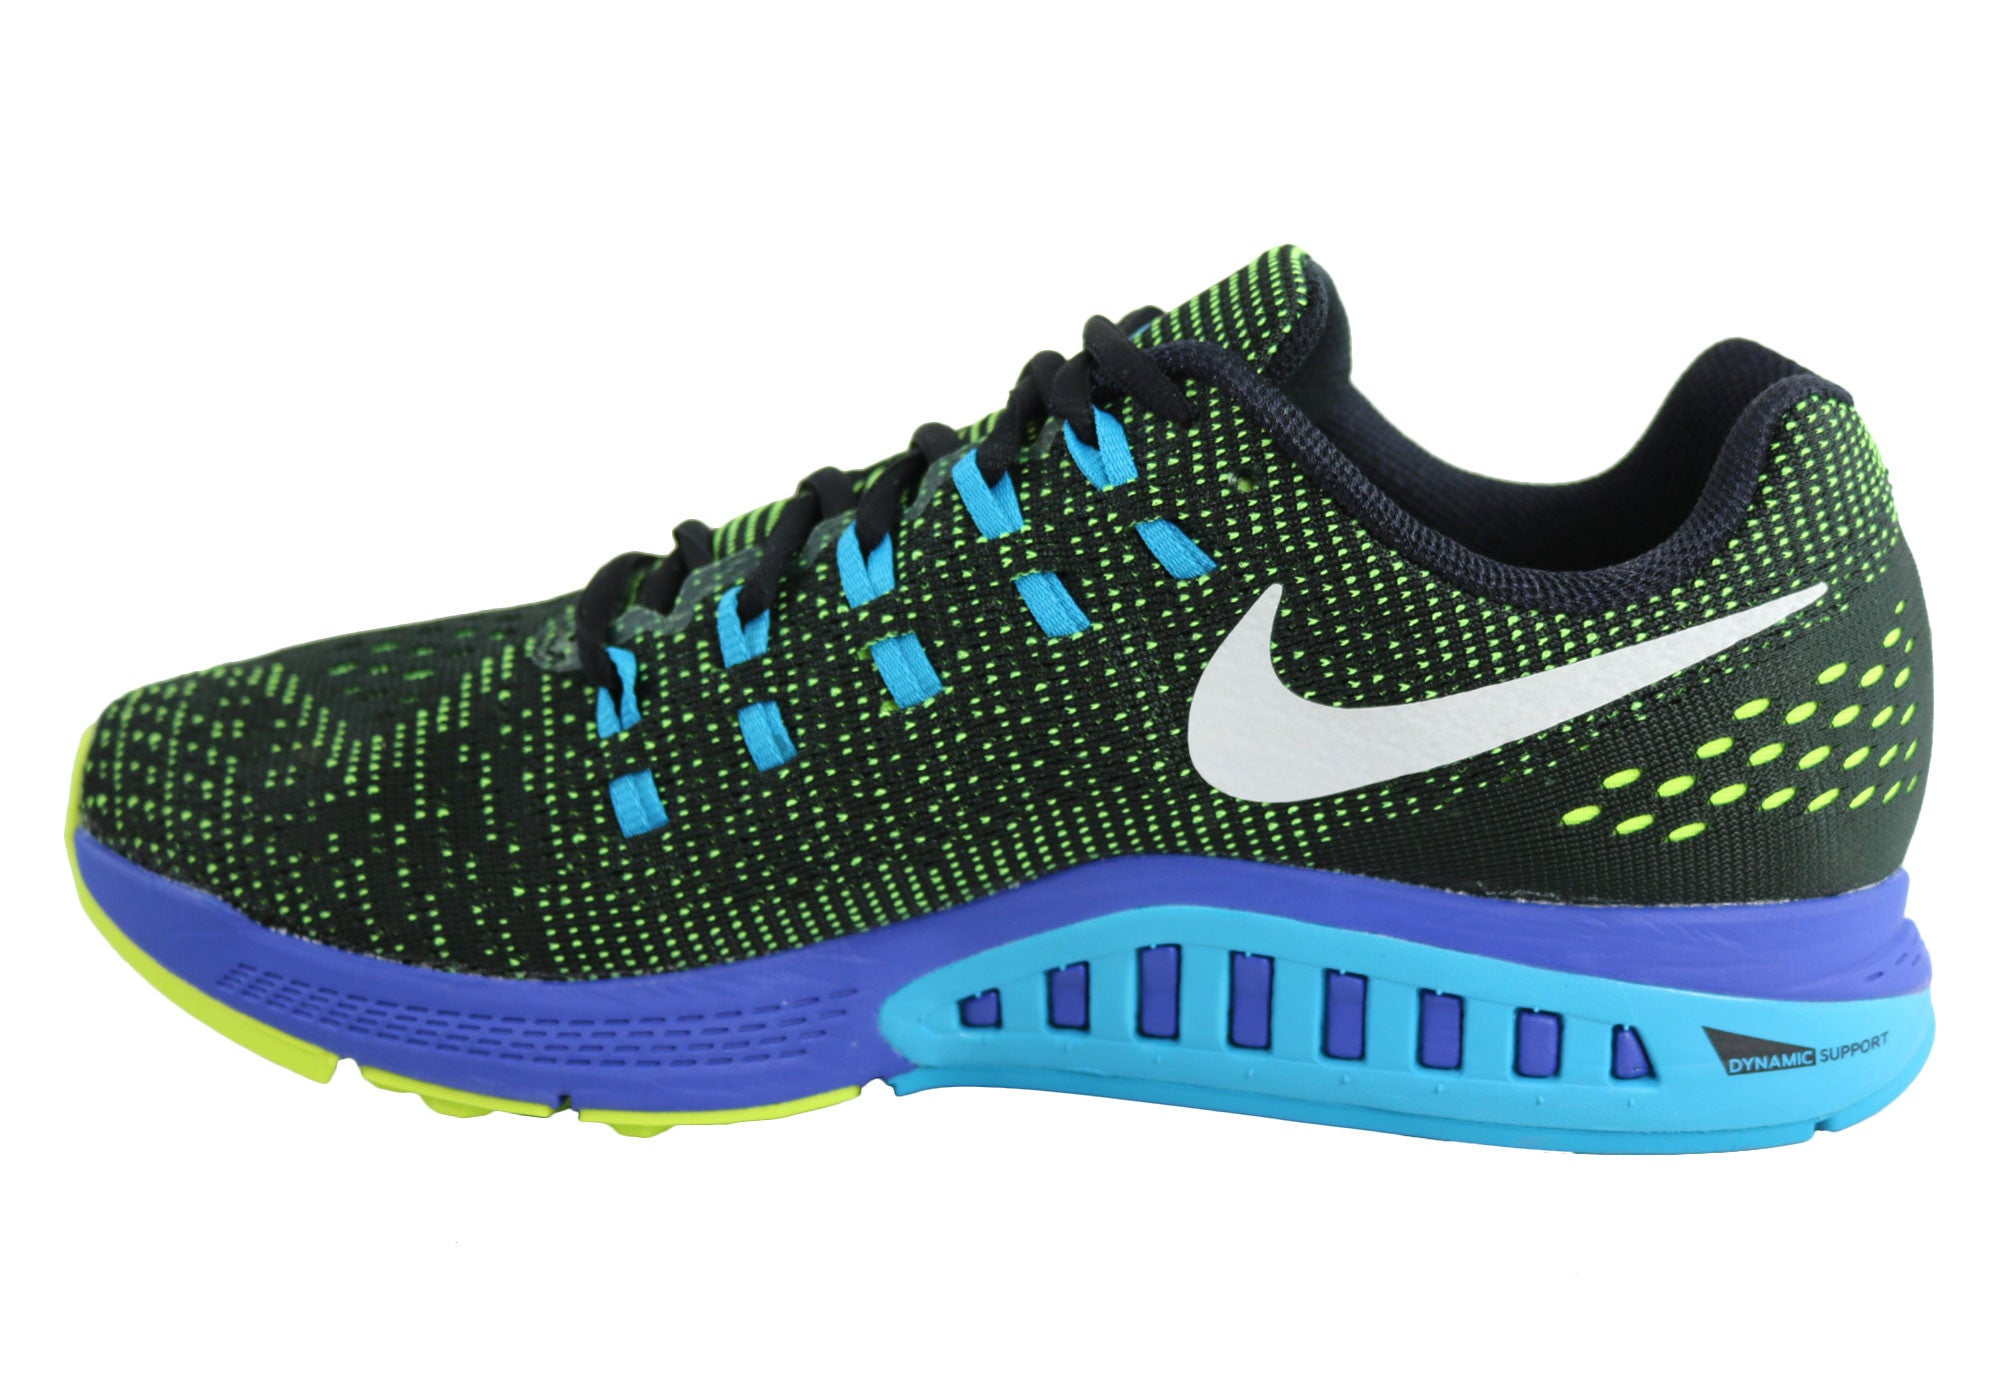 986a97c663b8 New Mens Nike Air Zoom Structure 19 Cushioned Running Sport Shoes